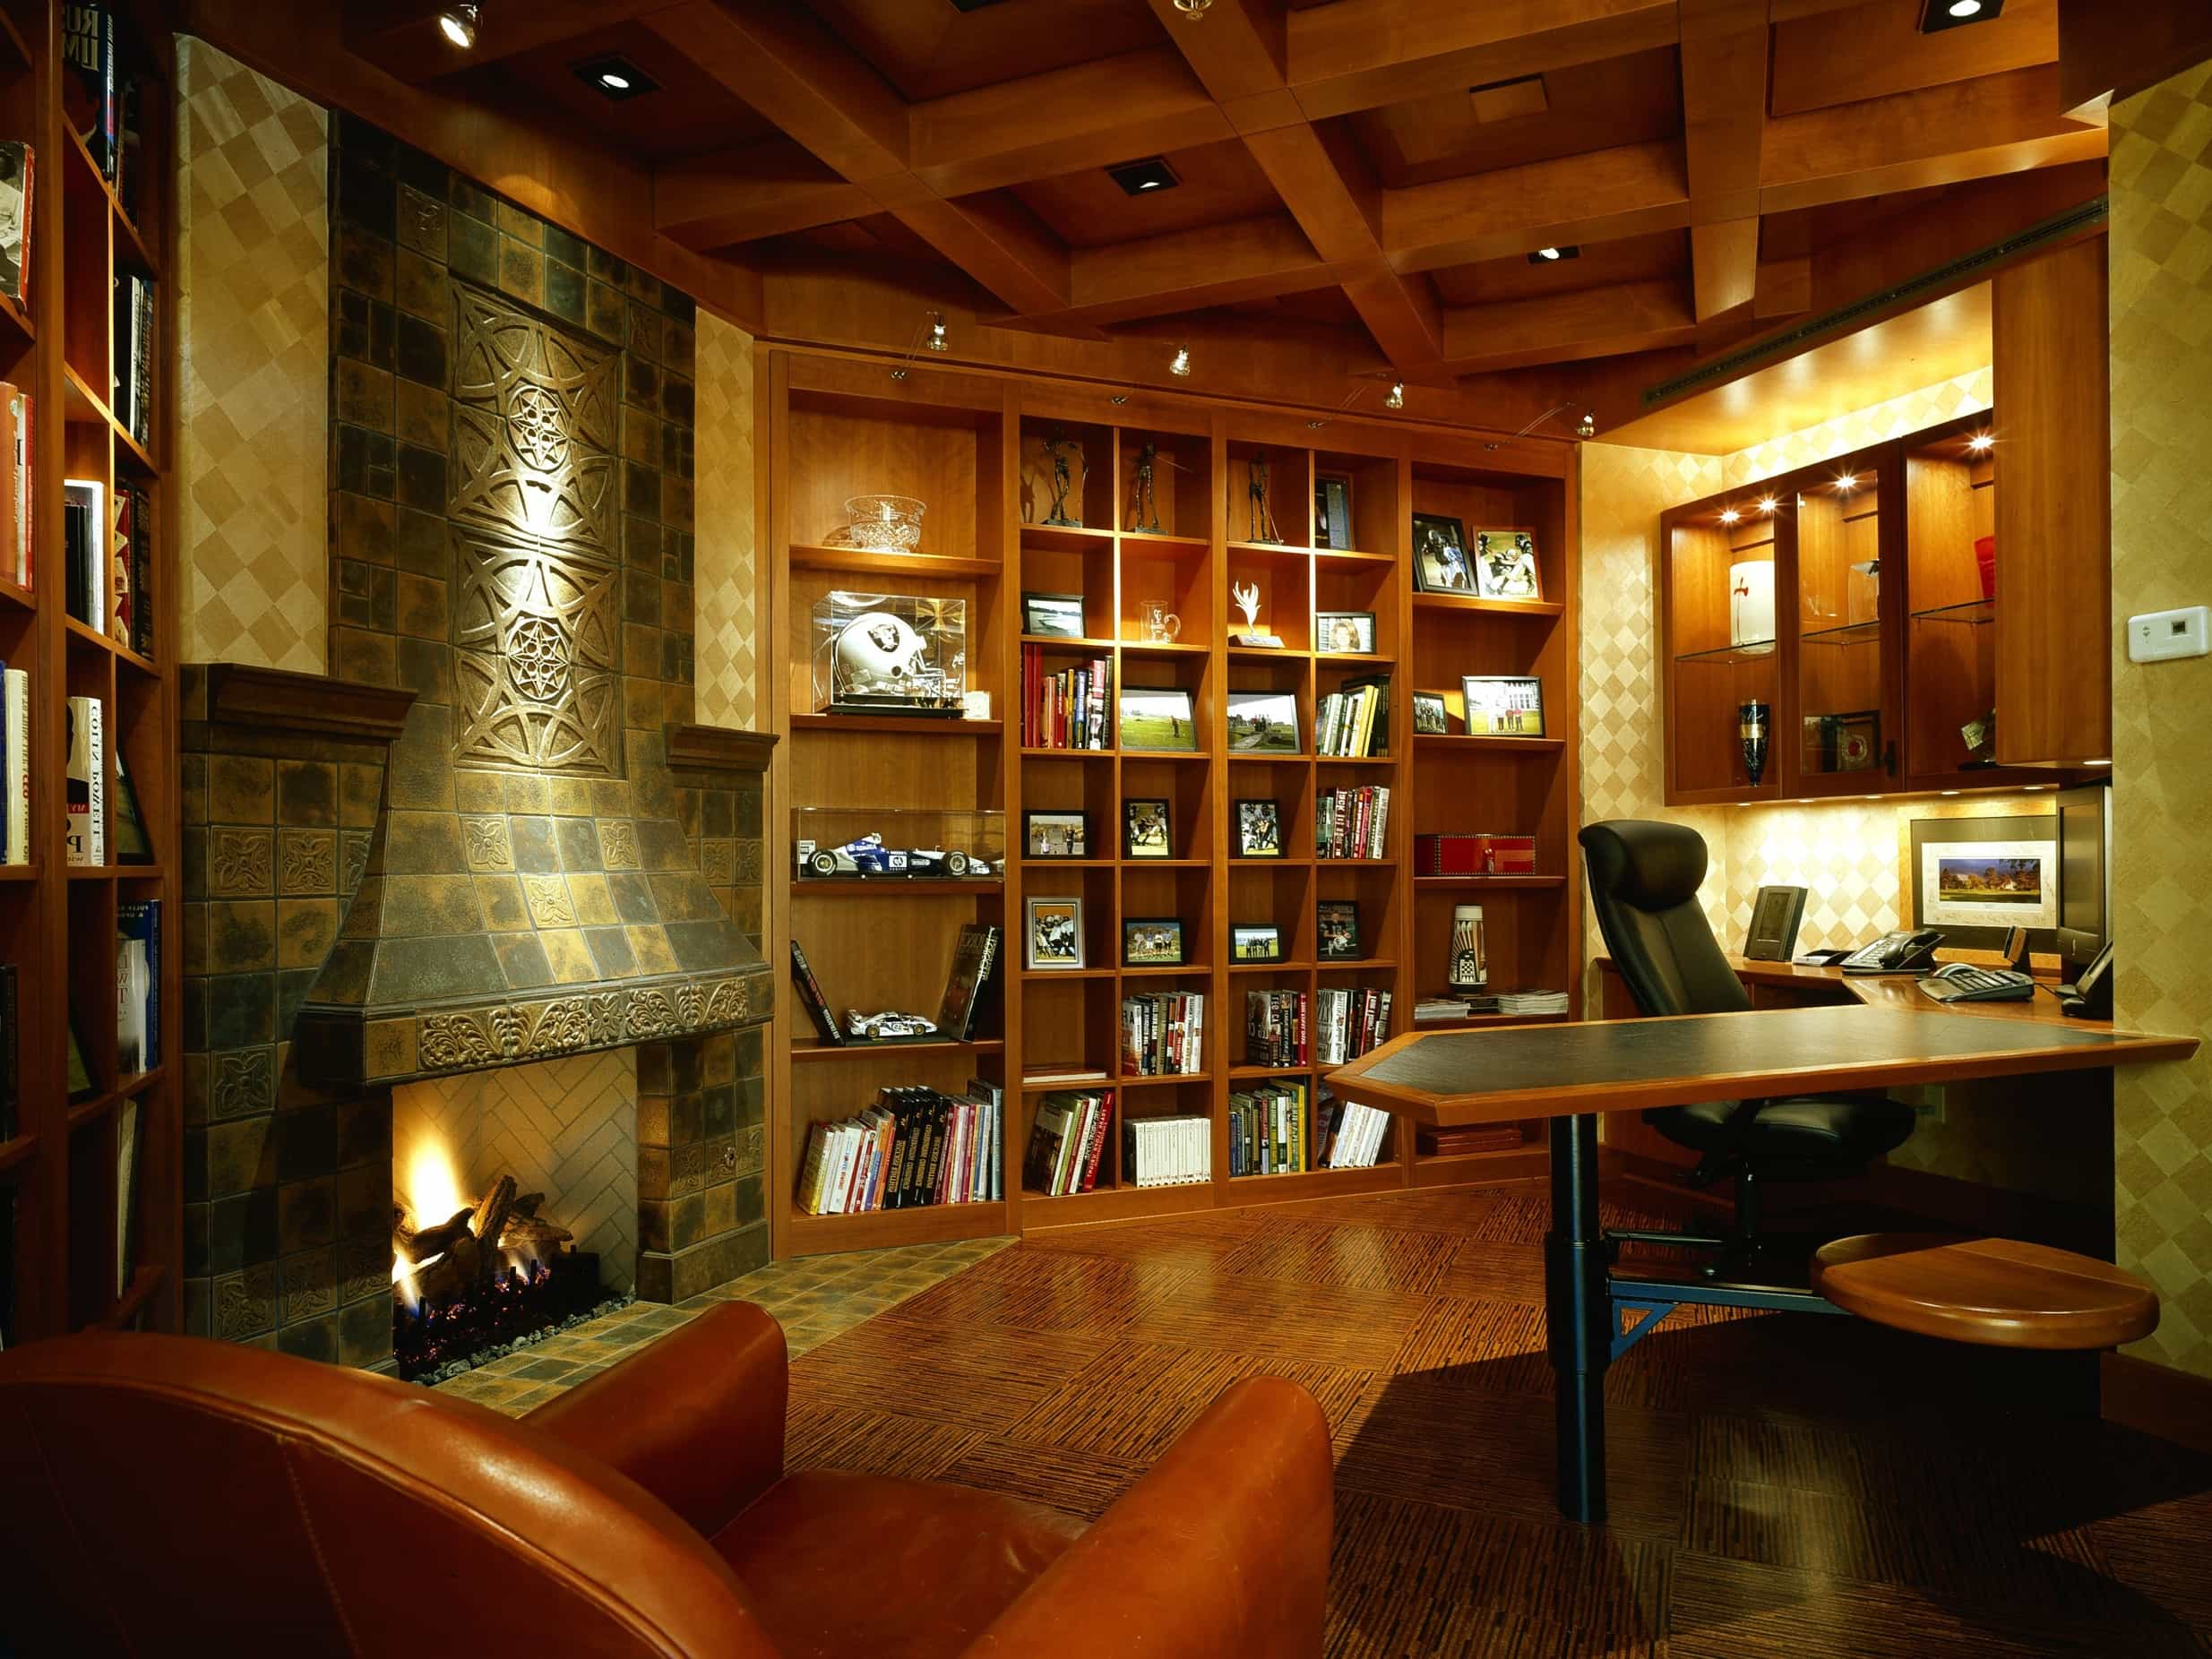 Featured Image of Craftsman Home Office With Fireplace And Built In Bookshelf